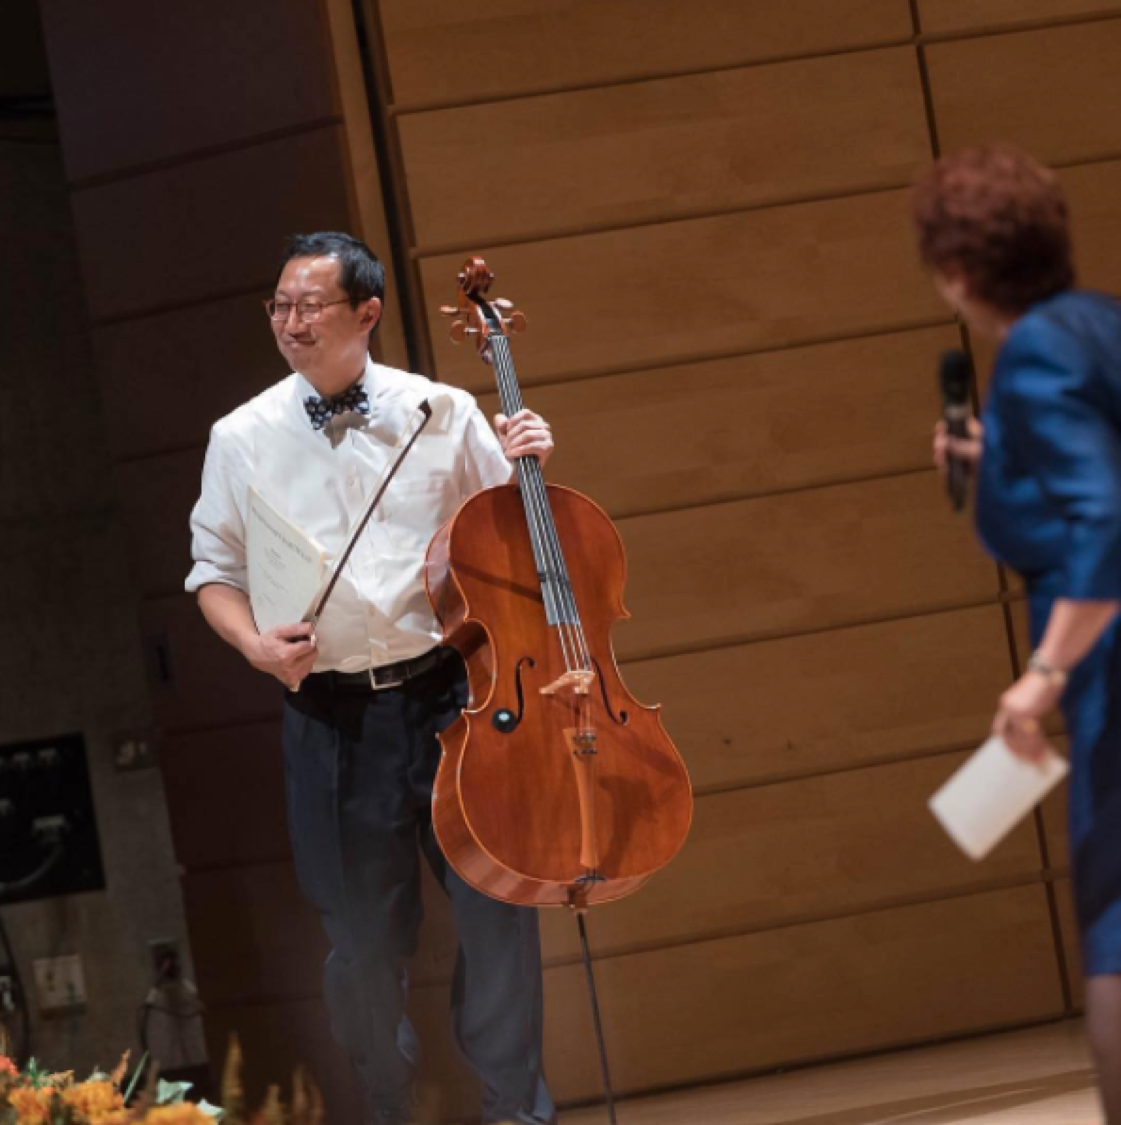 Repost from@universityofbc: @ubcpreztook the stage to perform with his cello last night at a concert to celebrate his formal Installation as#UBC's 15th President and Vice-Chancellor.#UBCTuumEst